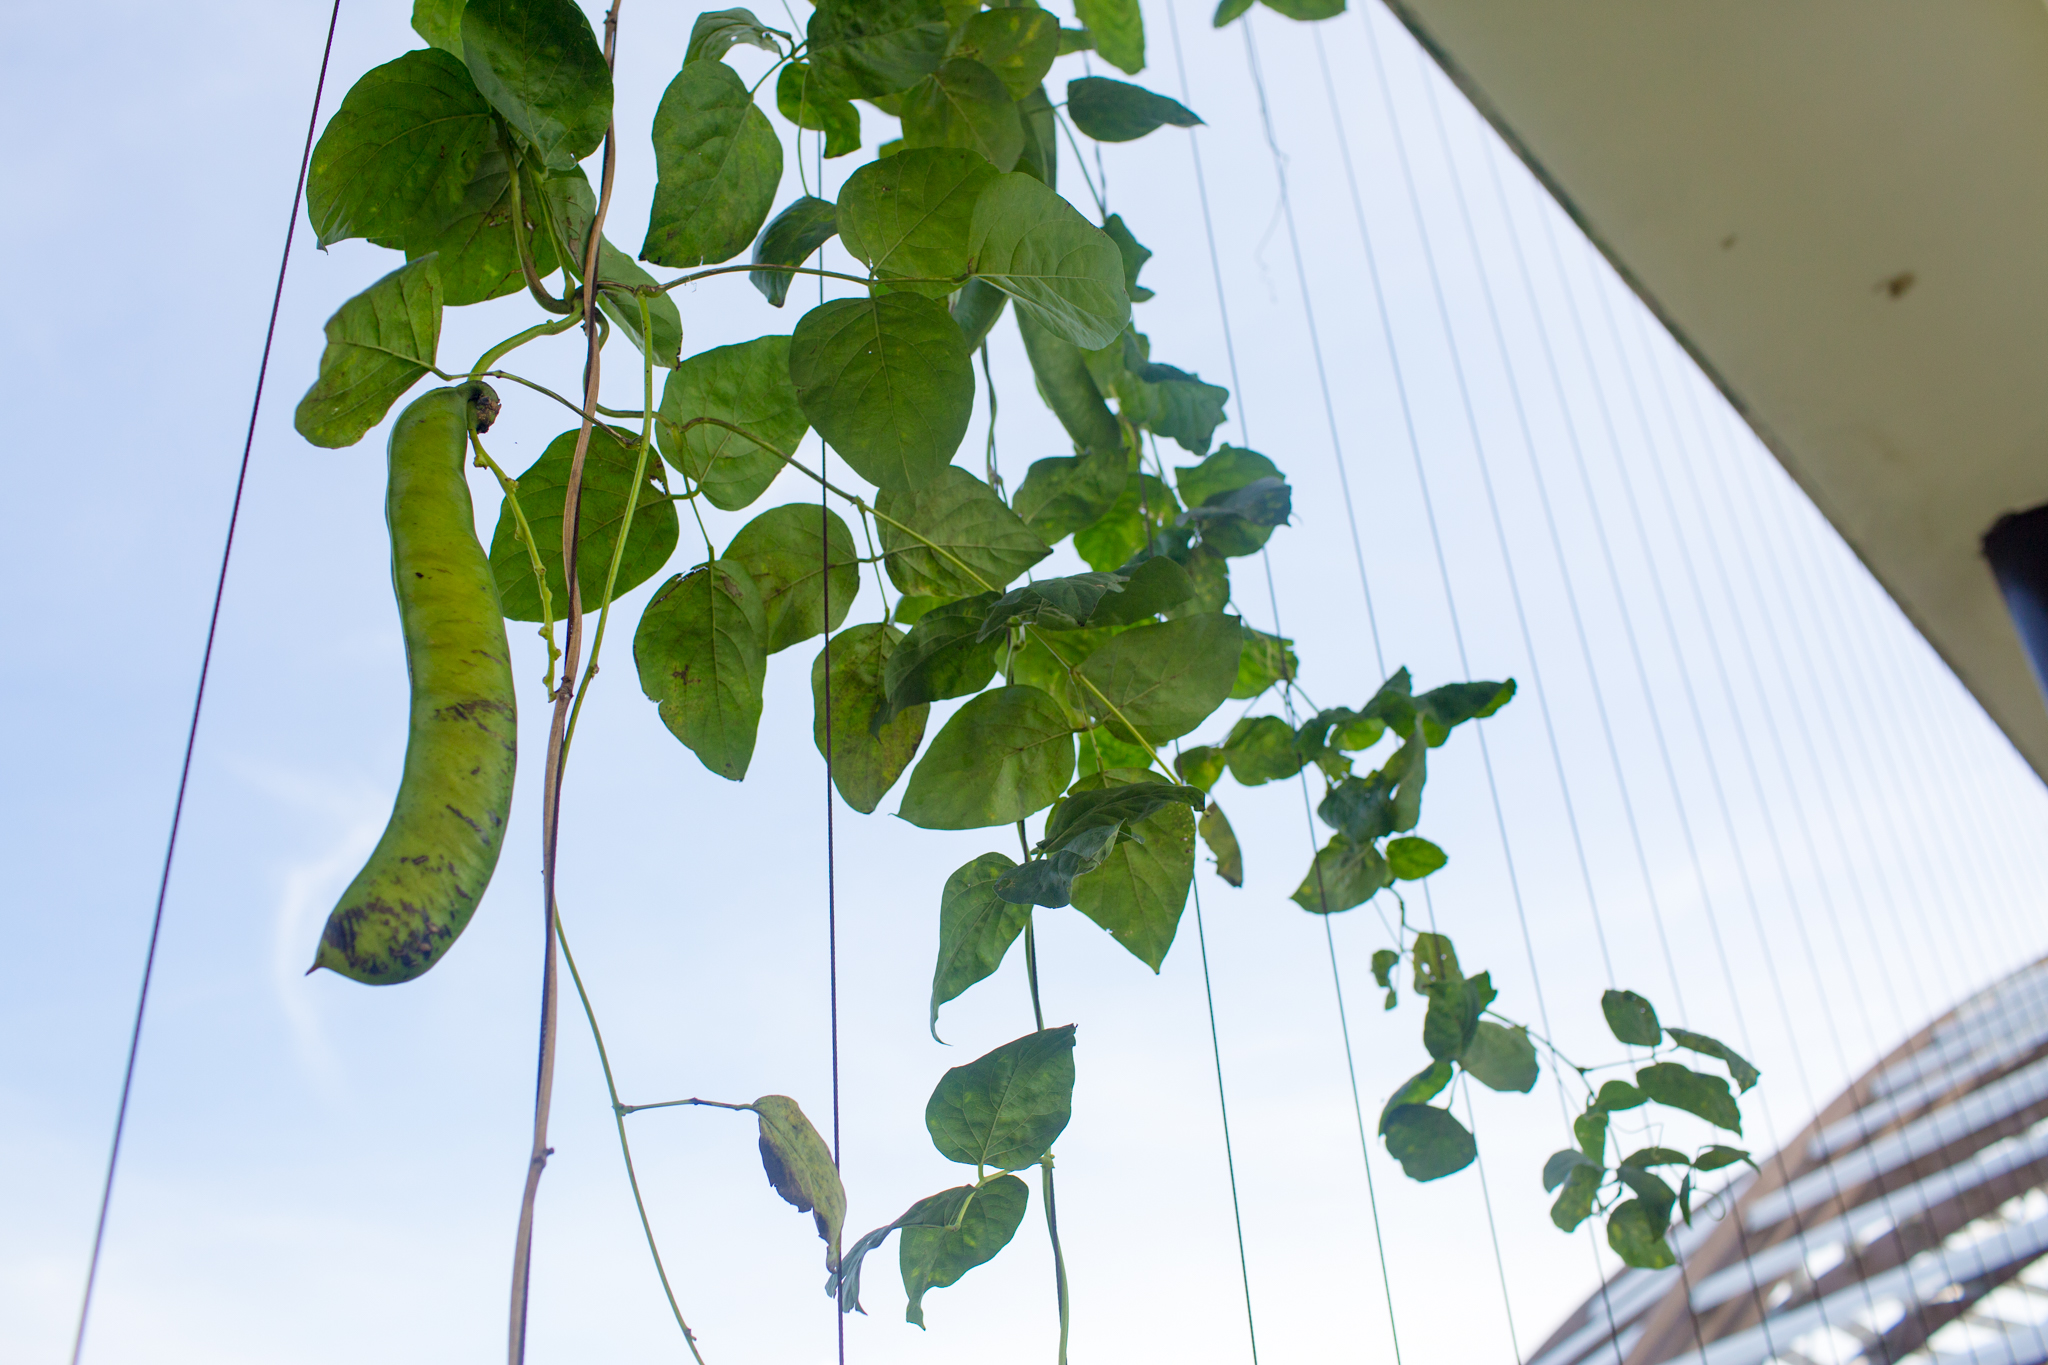 A sword bean hangs from its vine inside one of the domes at Crops for the Future.